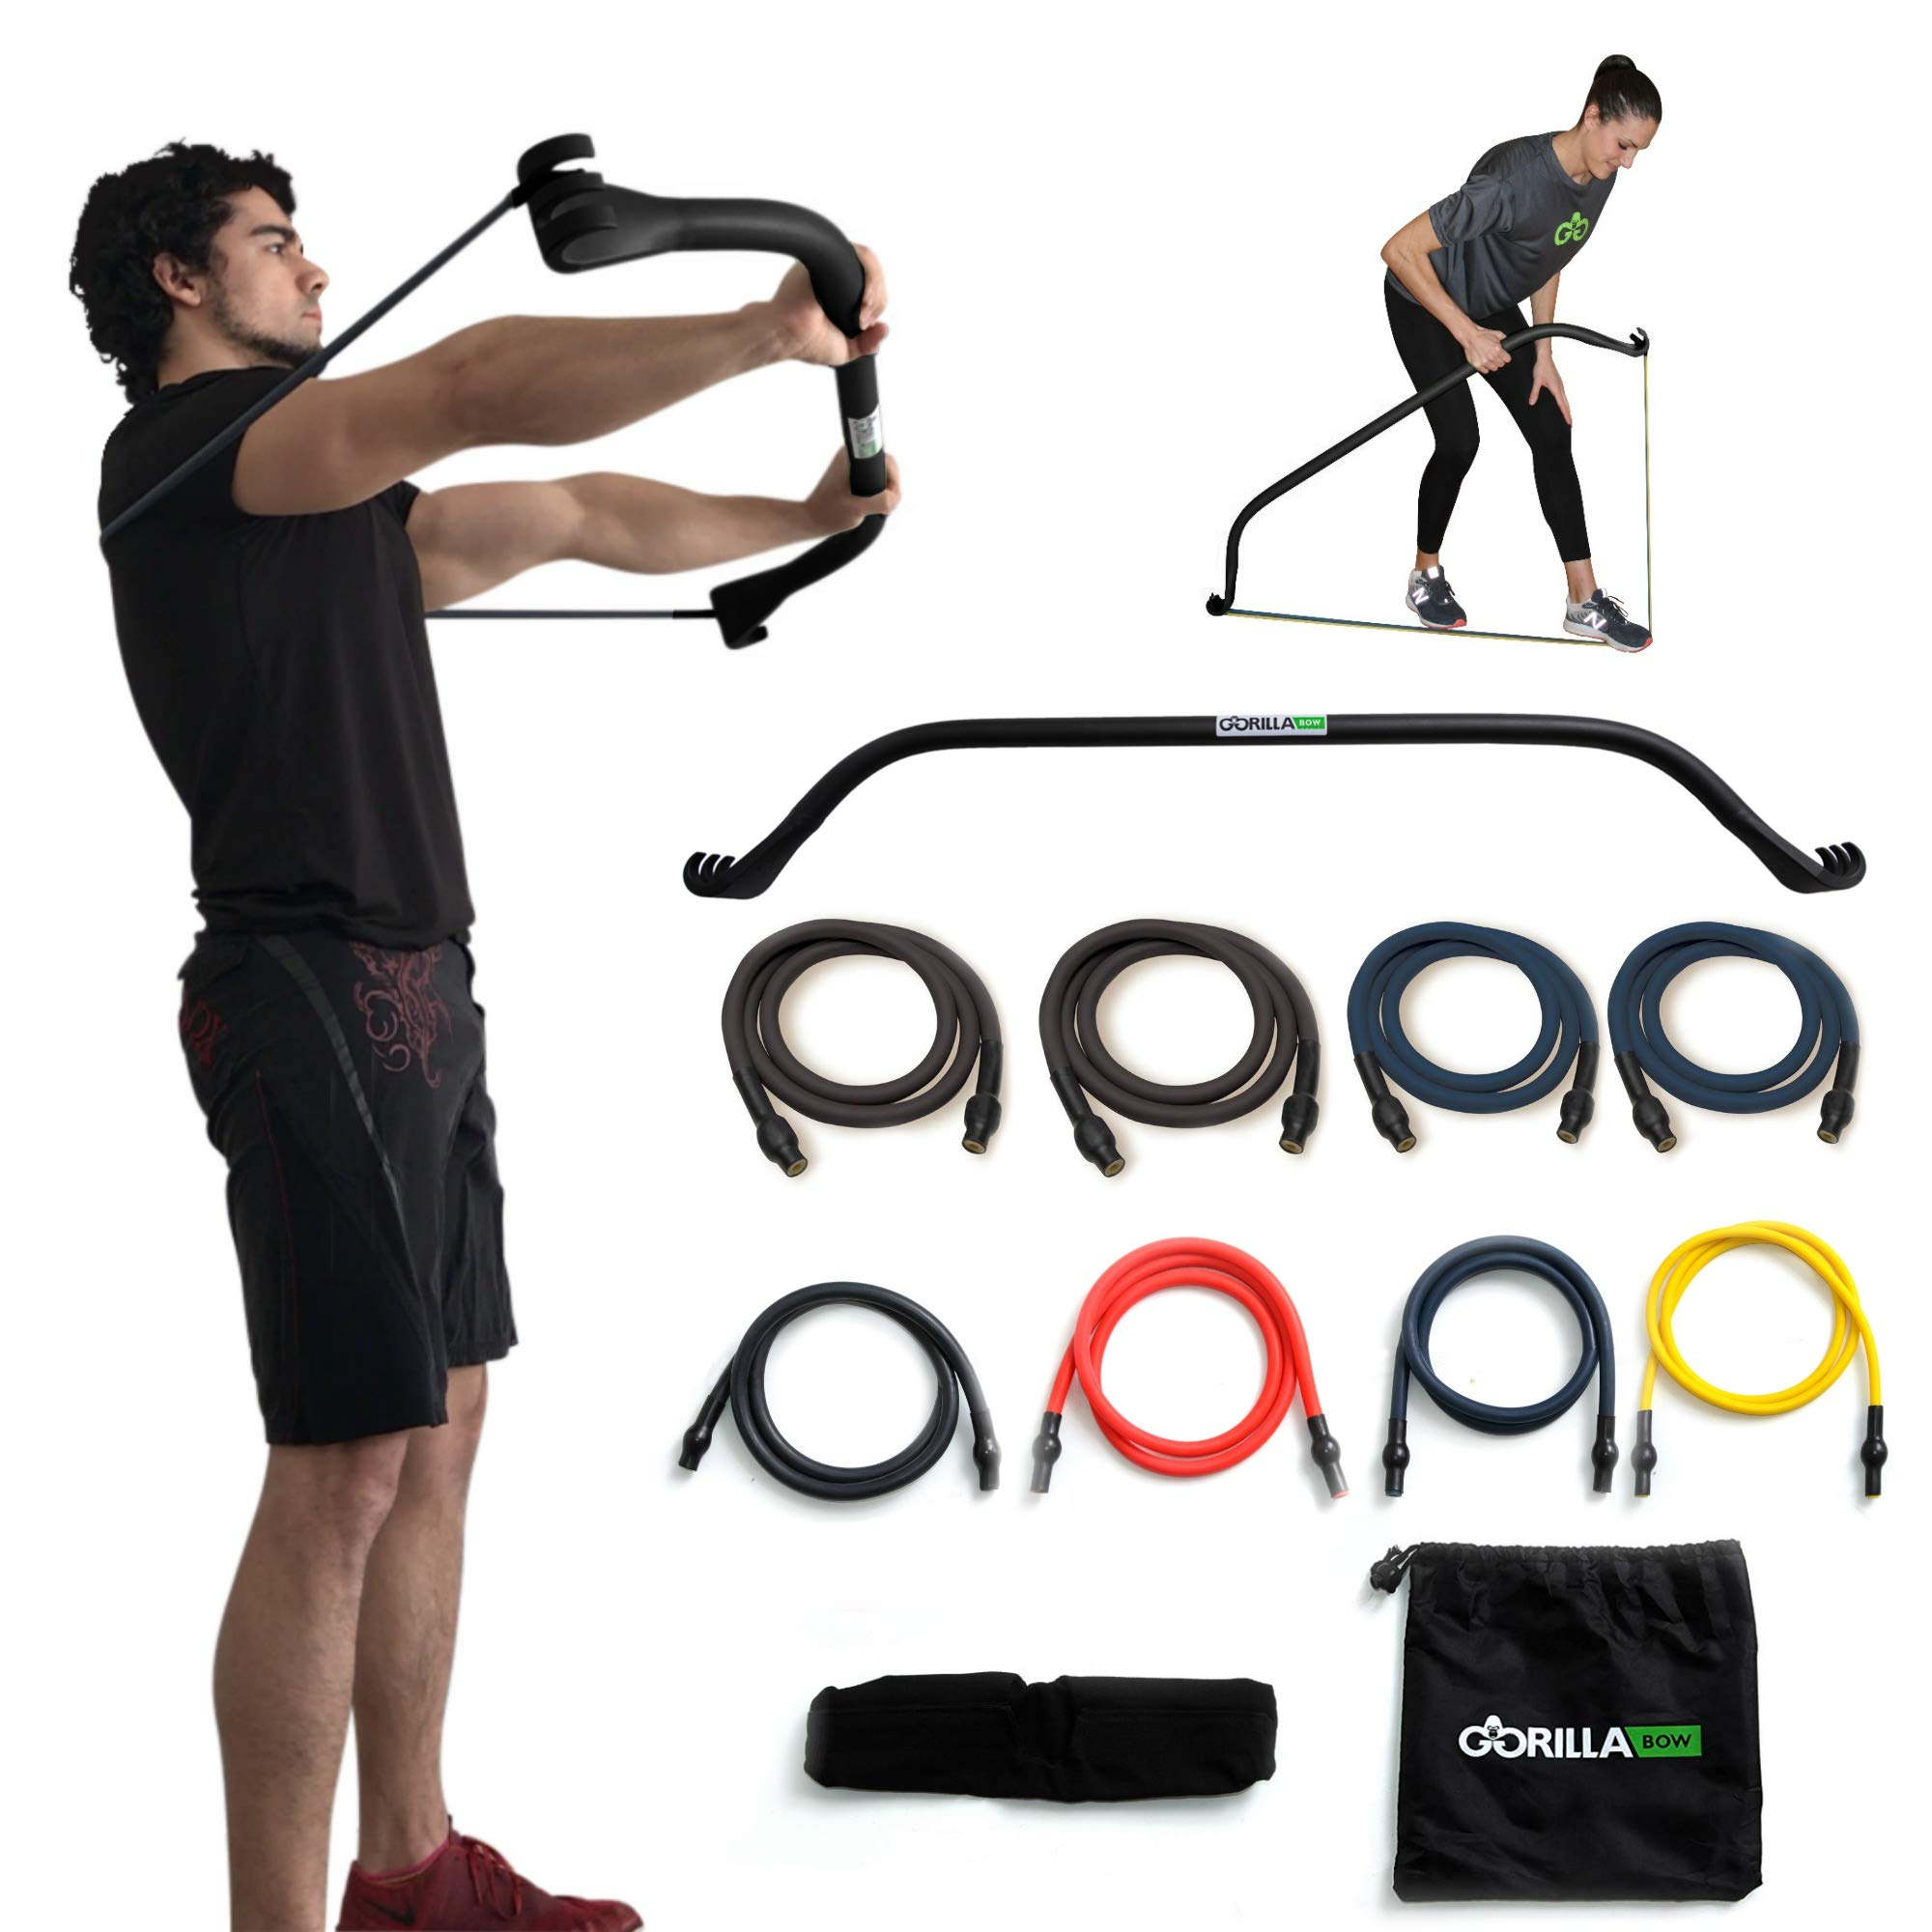 Gorilla Bow Portable Home Gym Resistance Band System Heavy Set, Weightlifting and HIIT Interval Training Kit, Full Body Workout Equipment (Heavy Black) by Gorilla Fitness